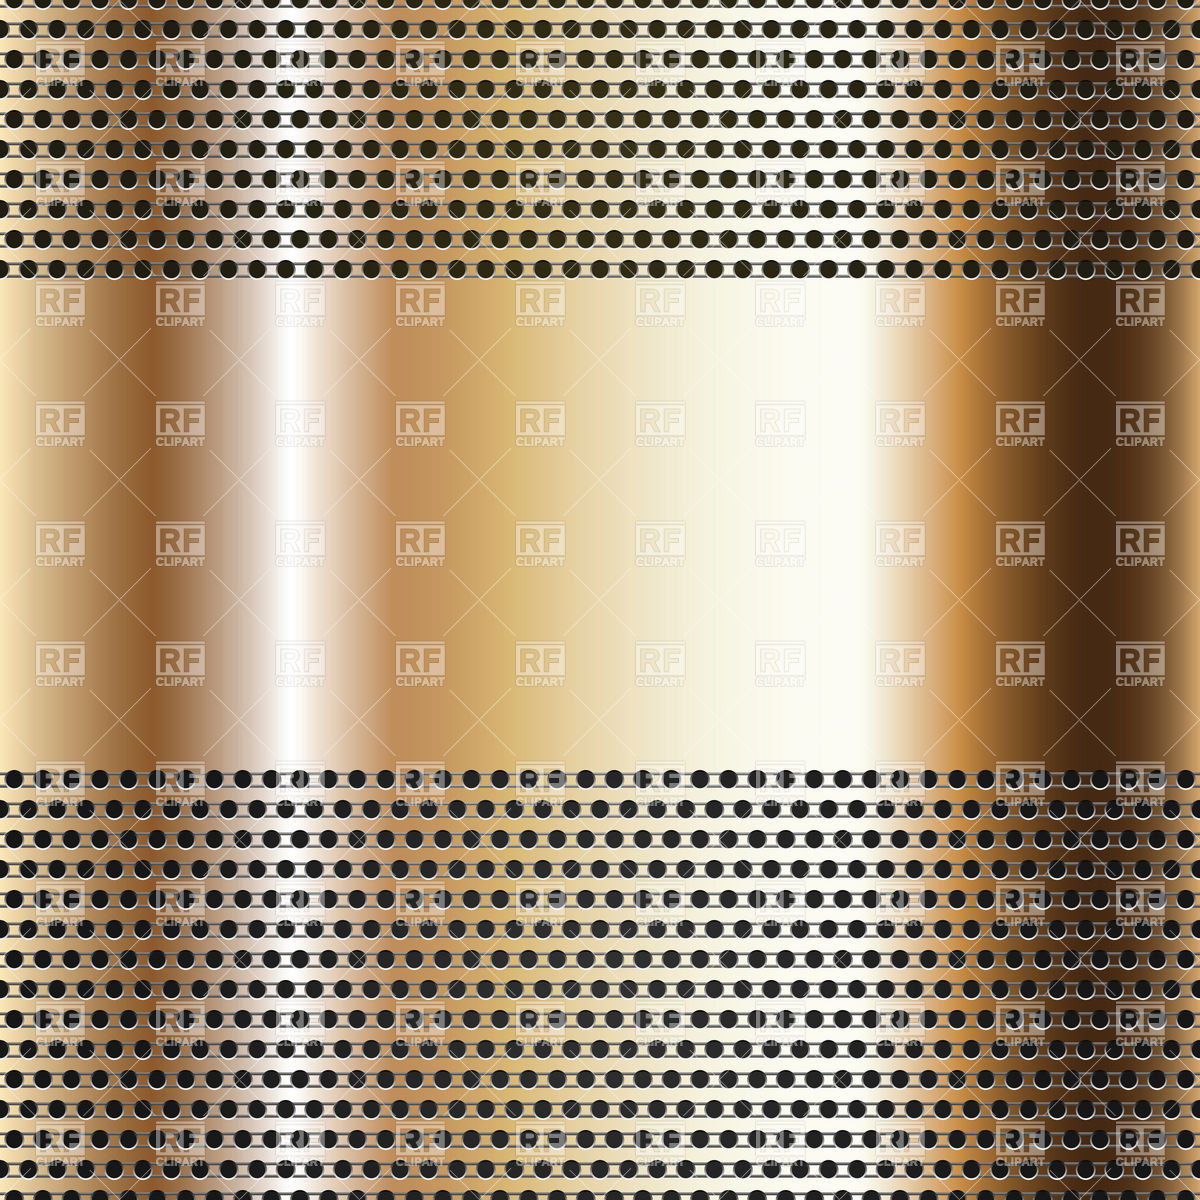 Bronze perforated sheet background Vector Image #18464.